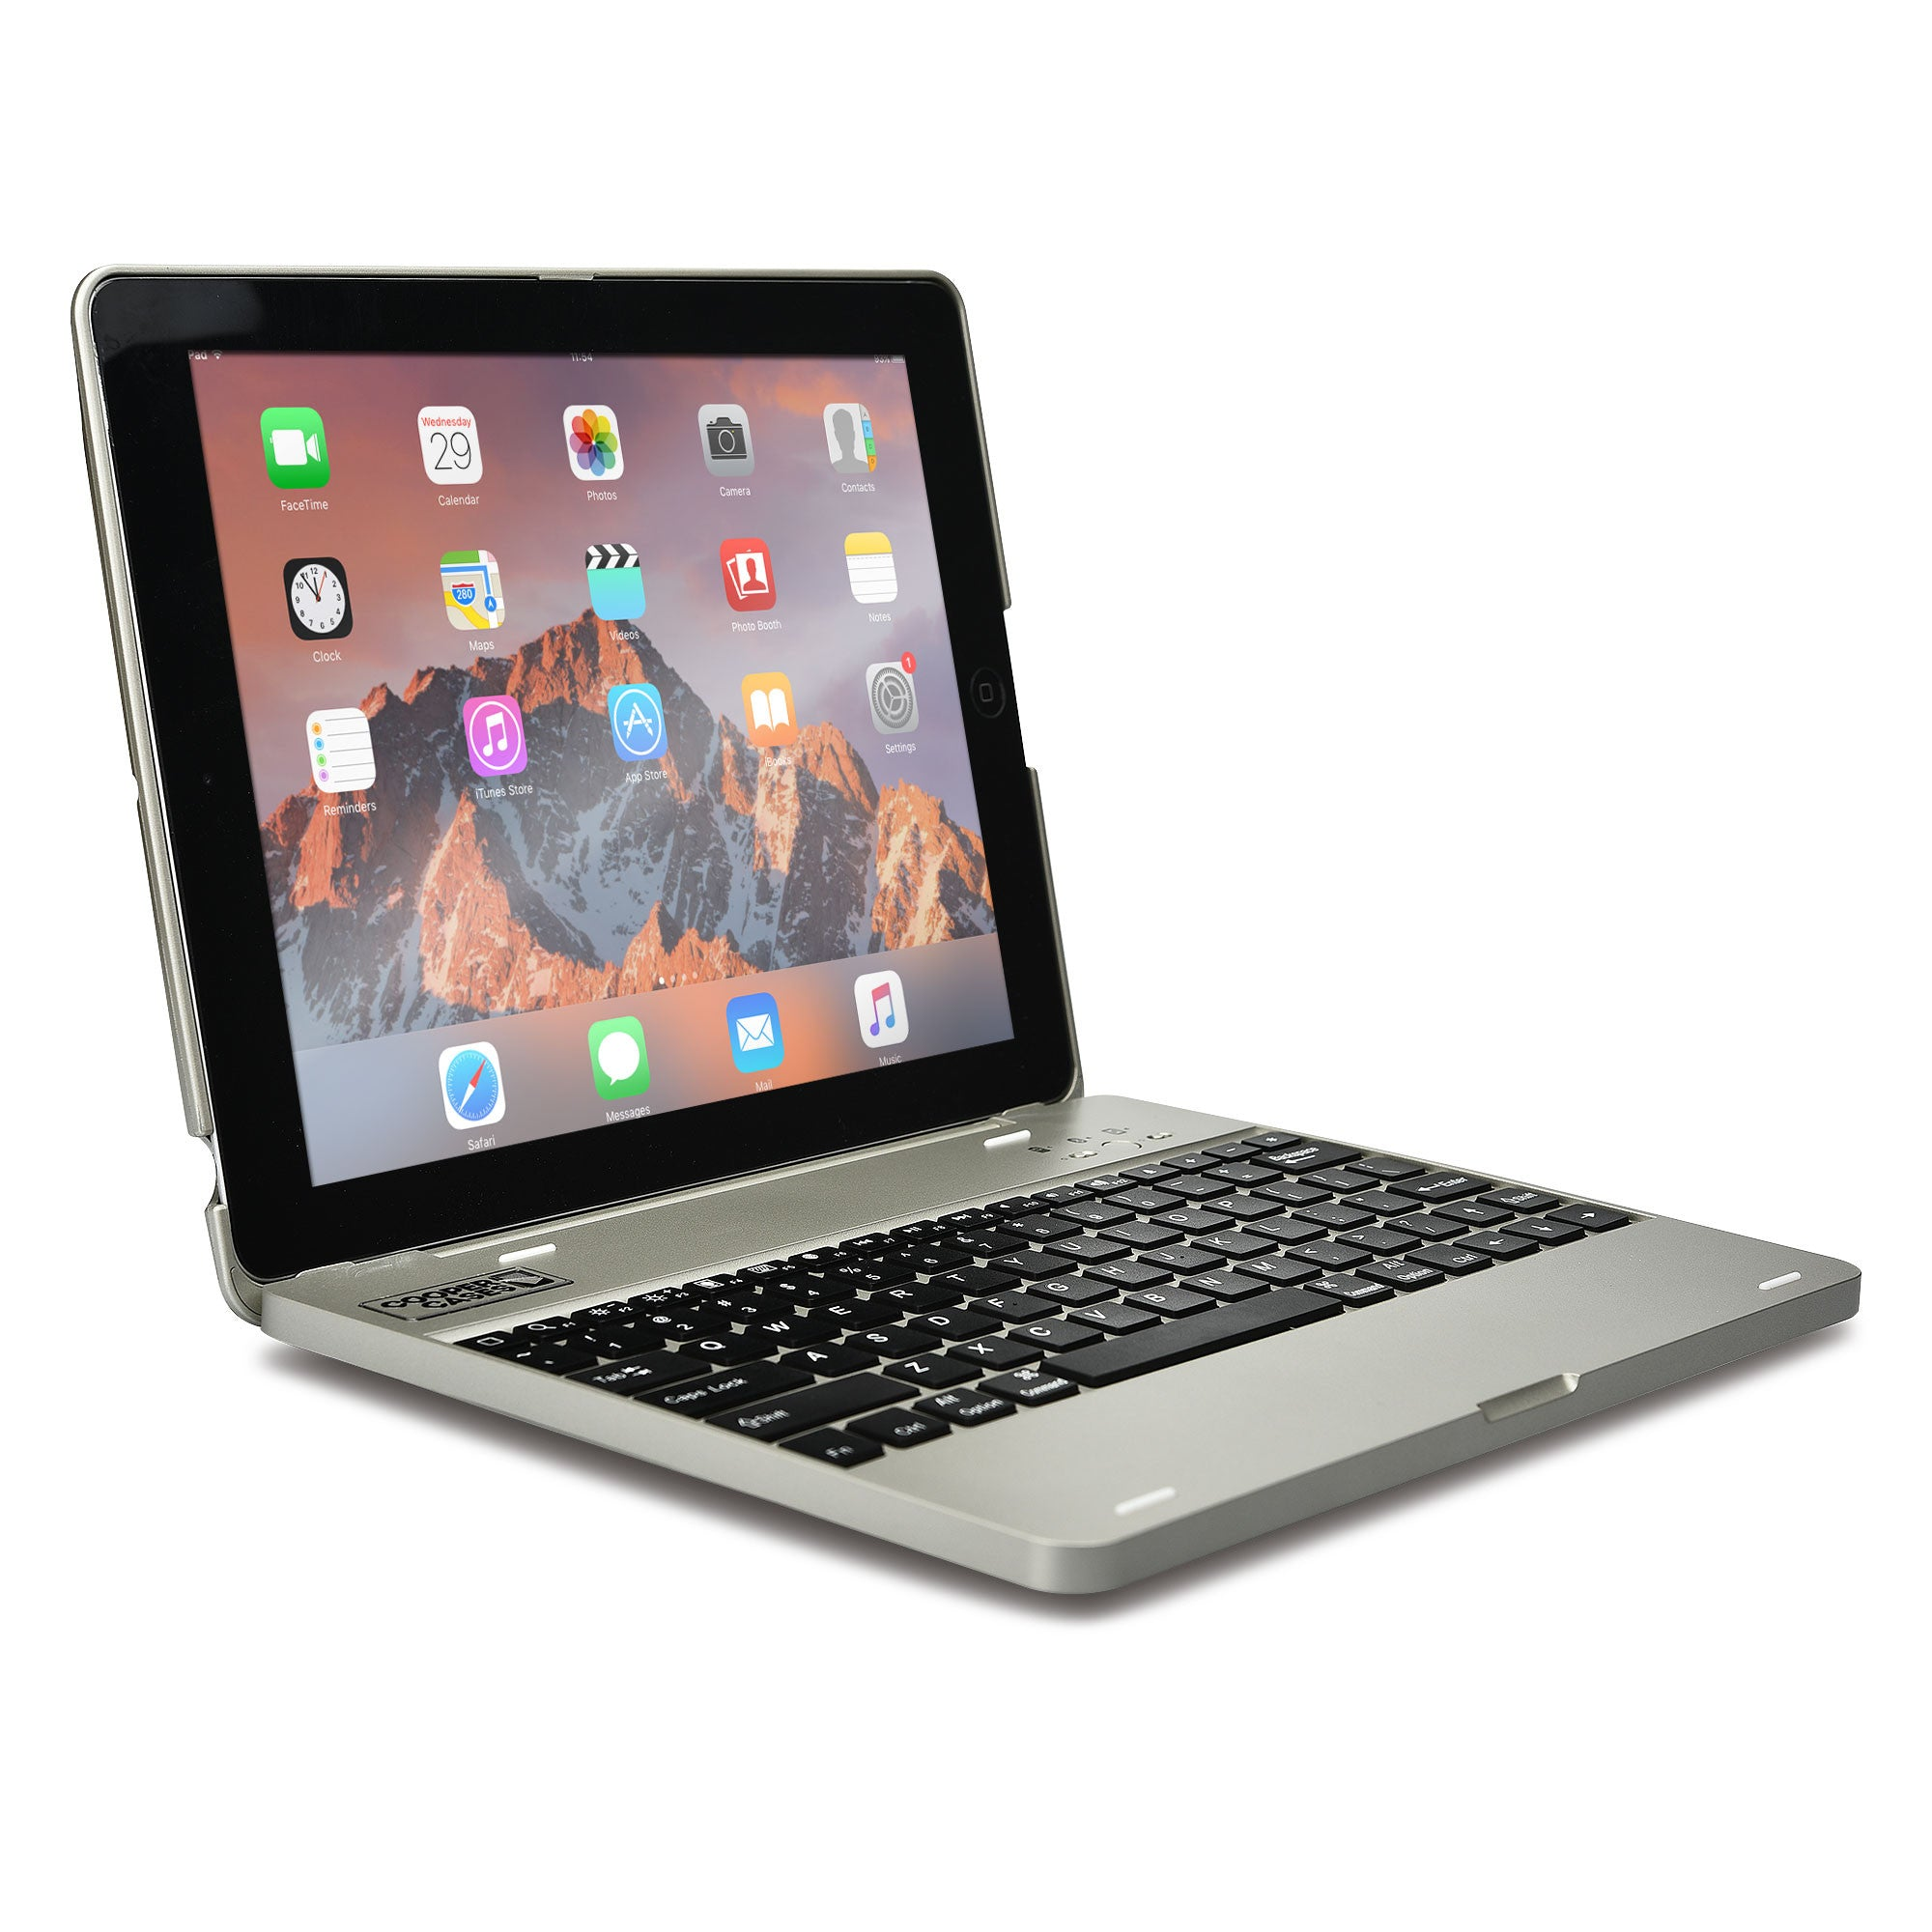 Cooper Kai Skel Clamshell Keyboard Amp Powerbank For Ipad 2